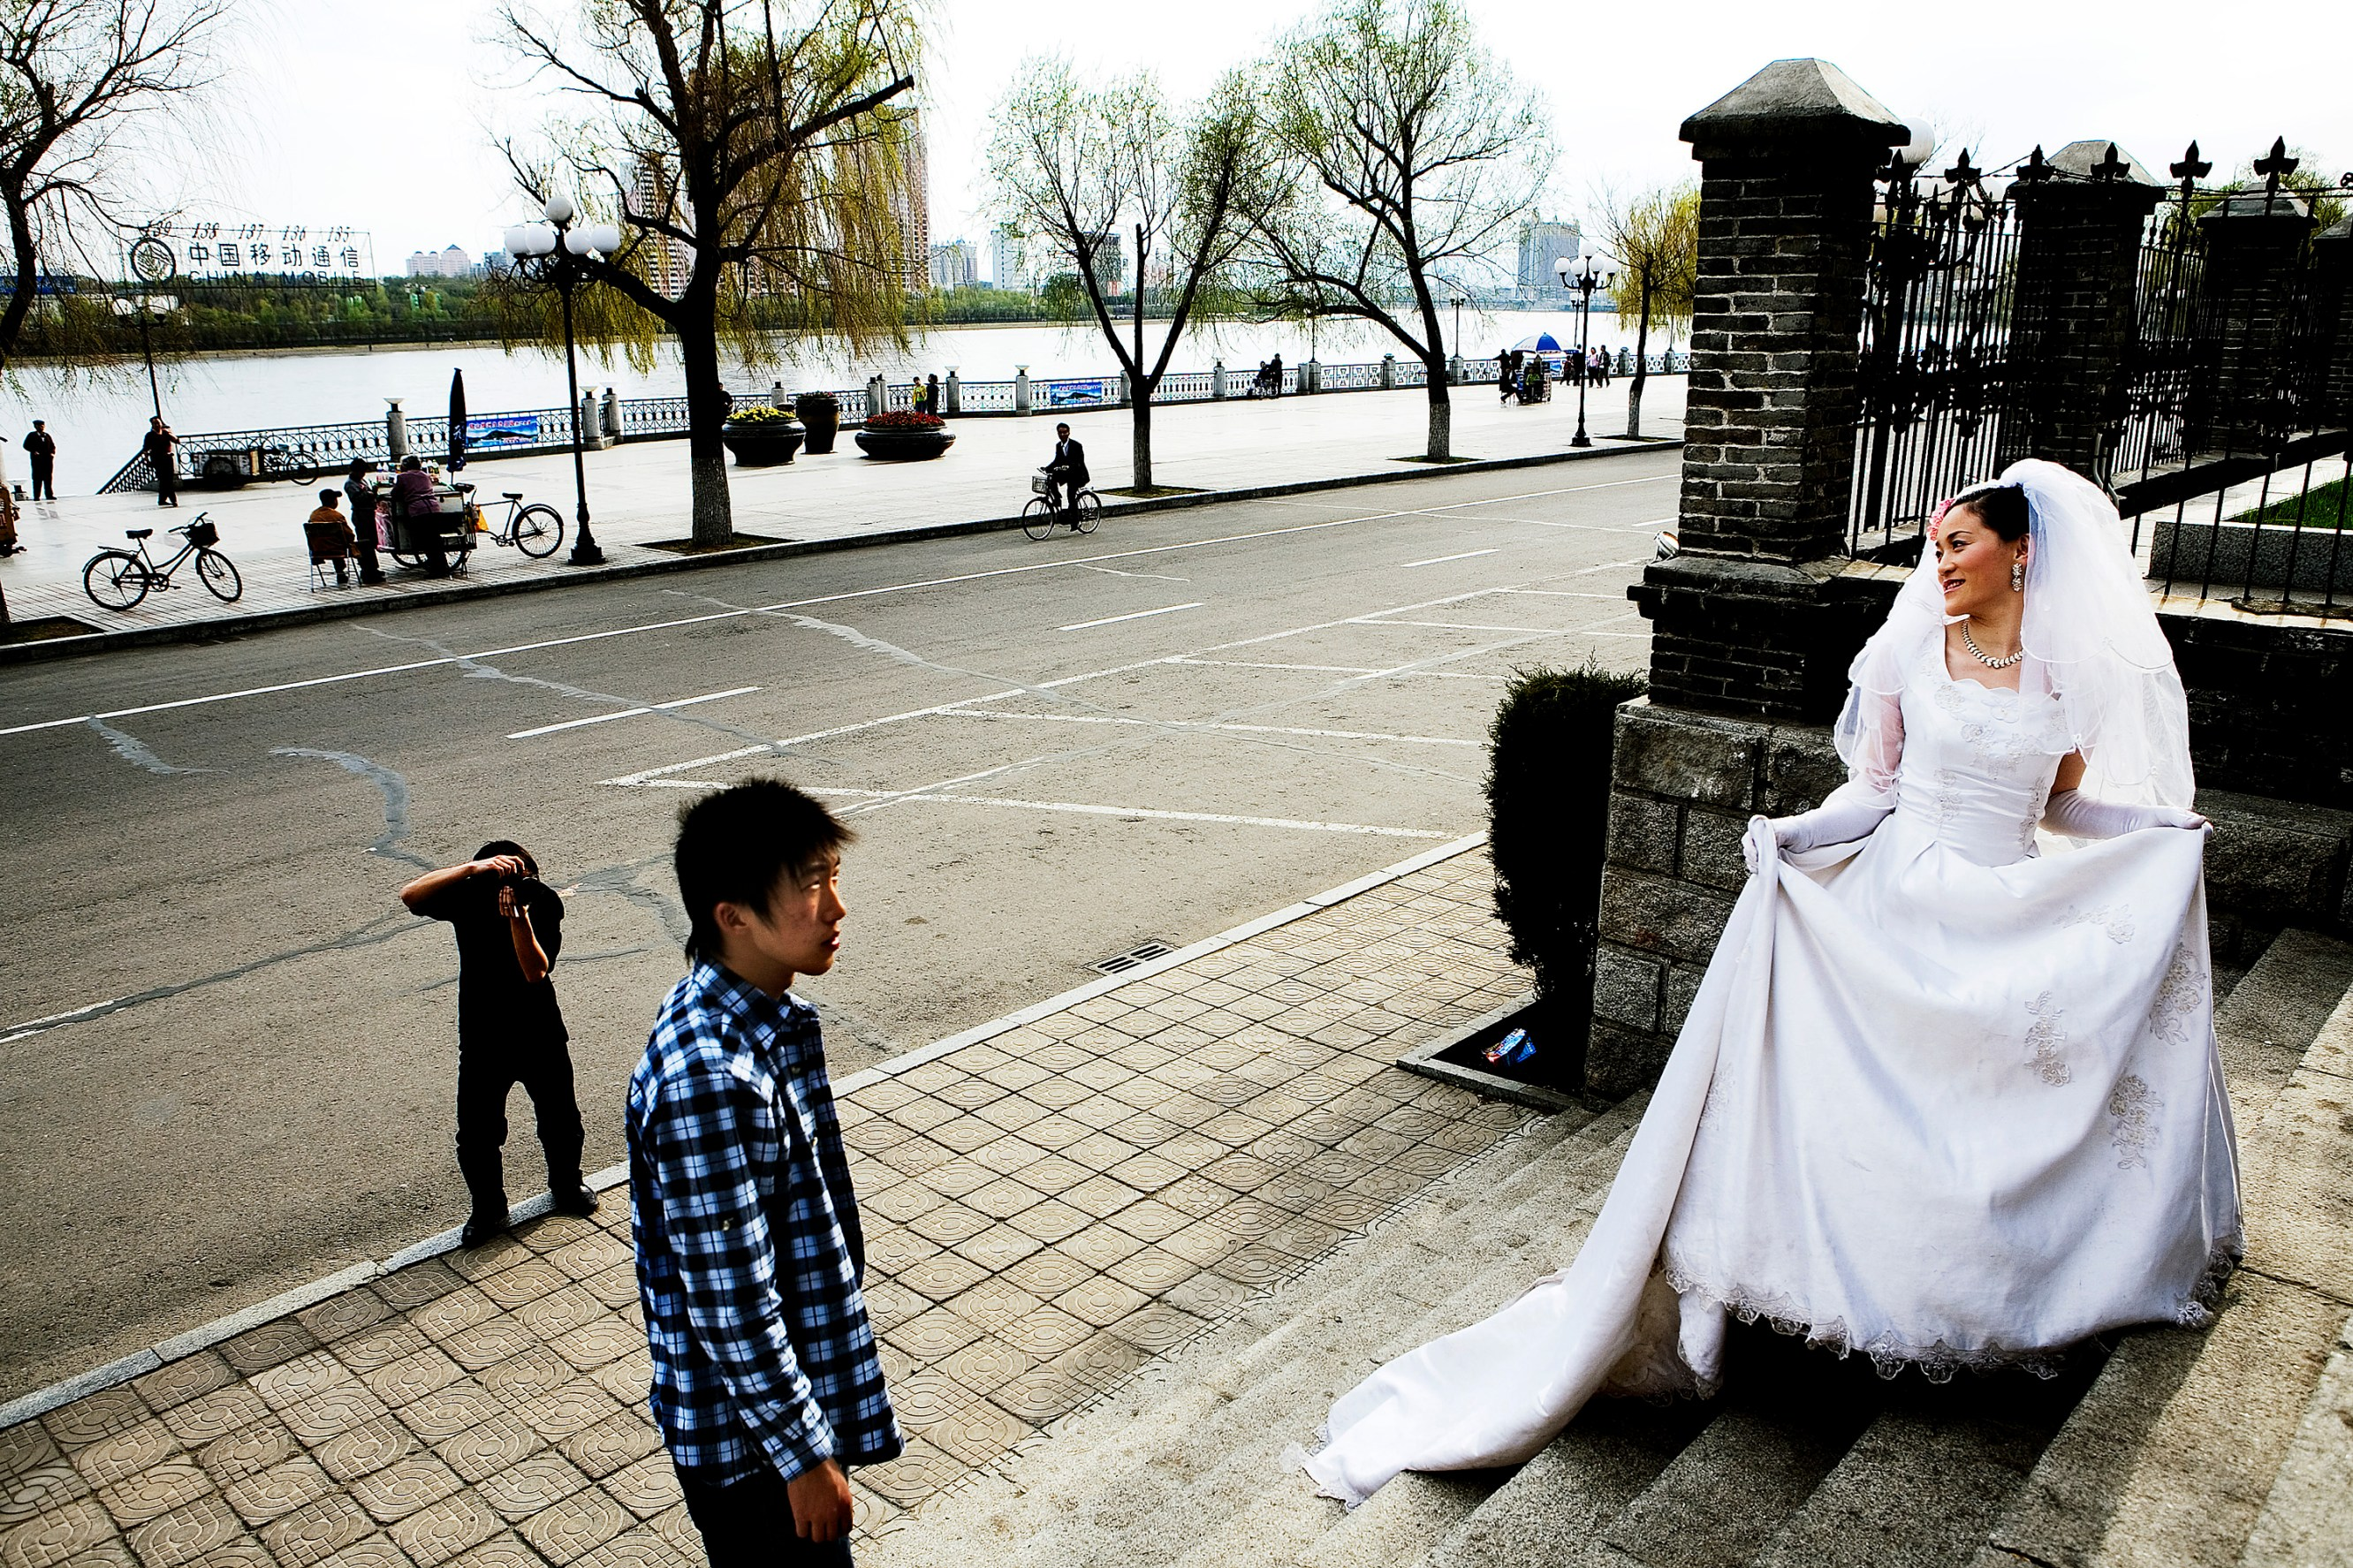 A newlywed bride poses for the standard wedding photos in front of a church on the Songhua River in Jilin. Christian Als / GraziaNeri